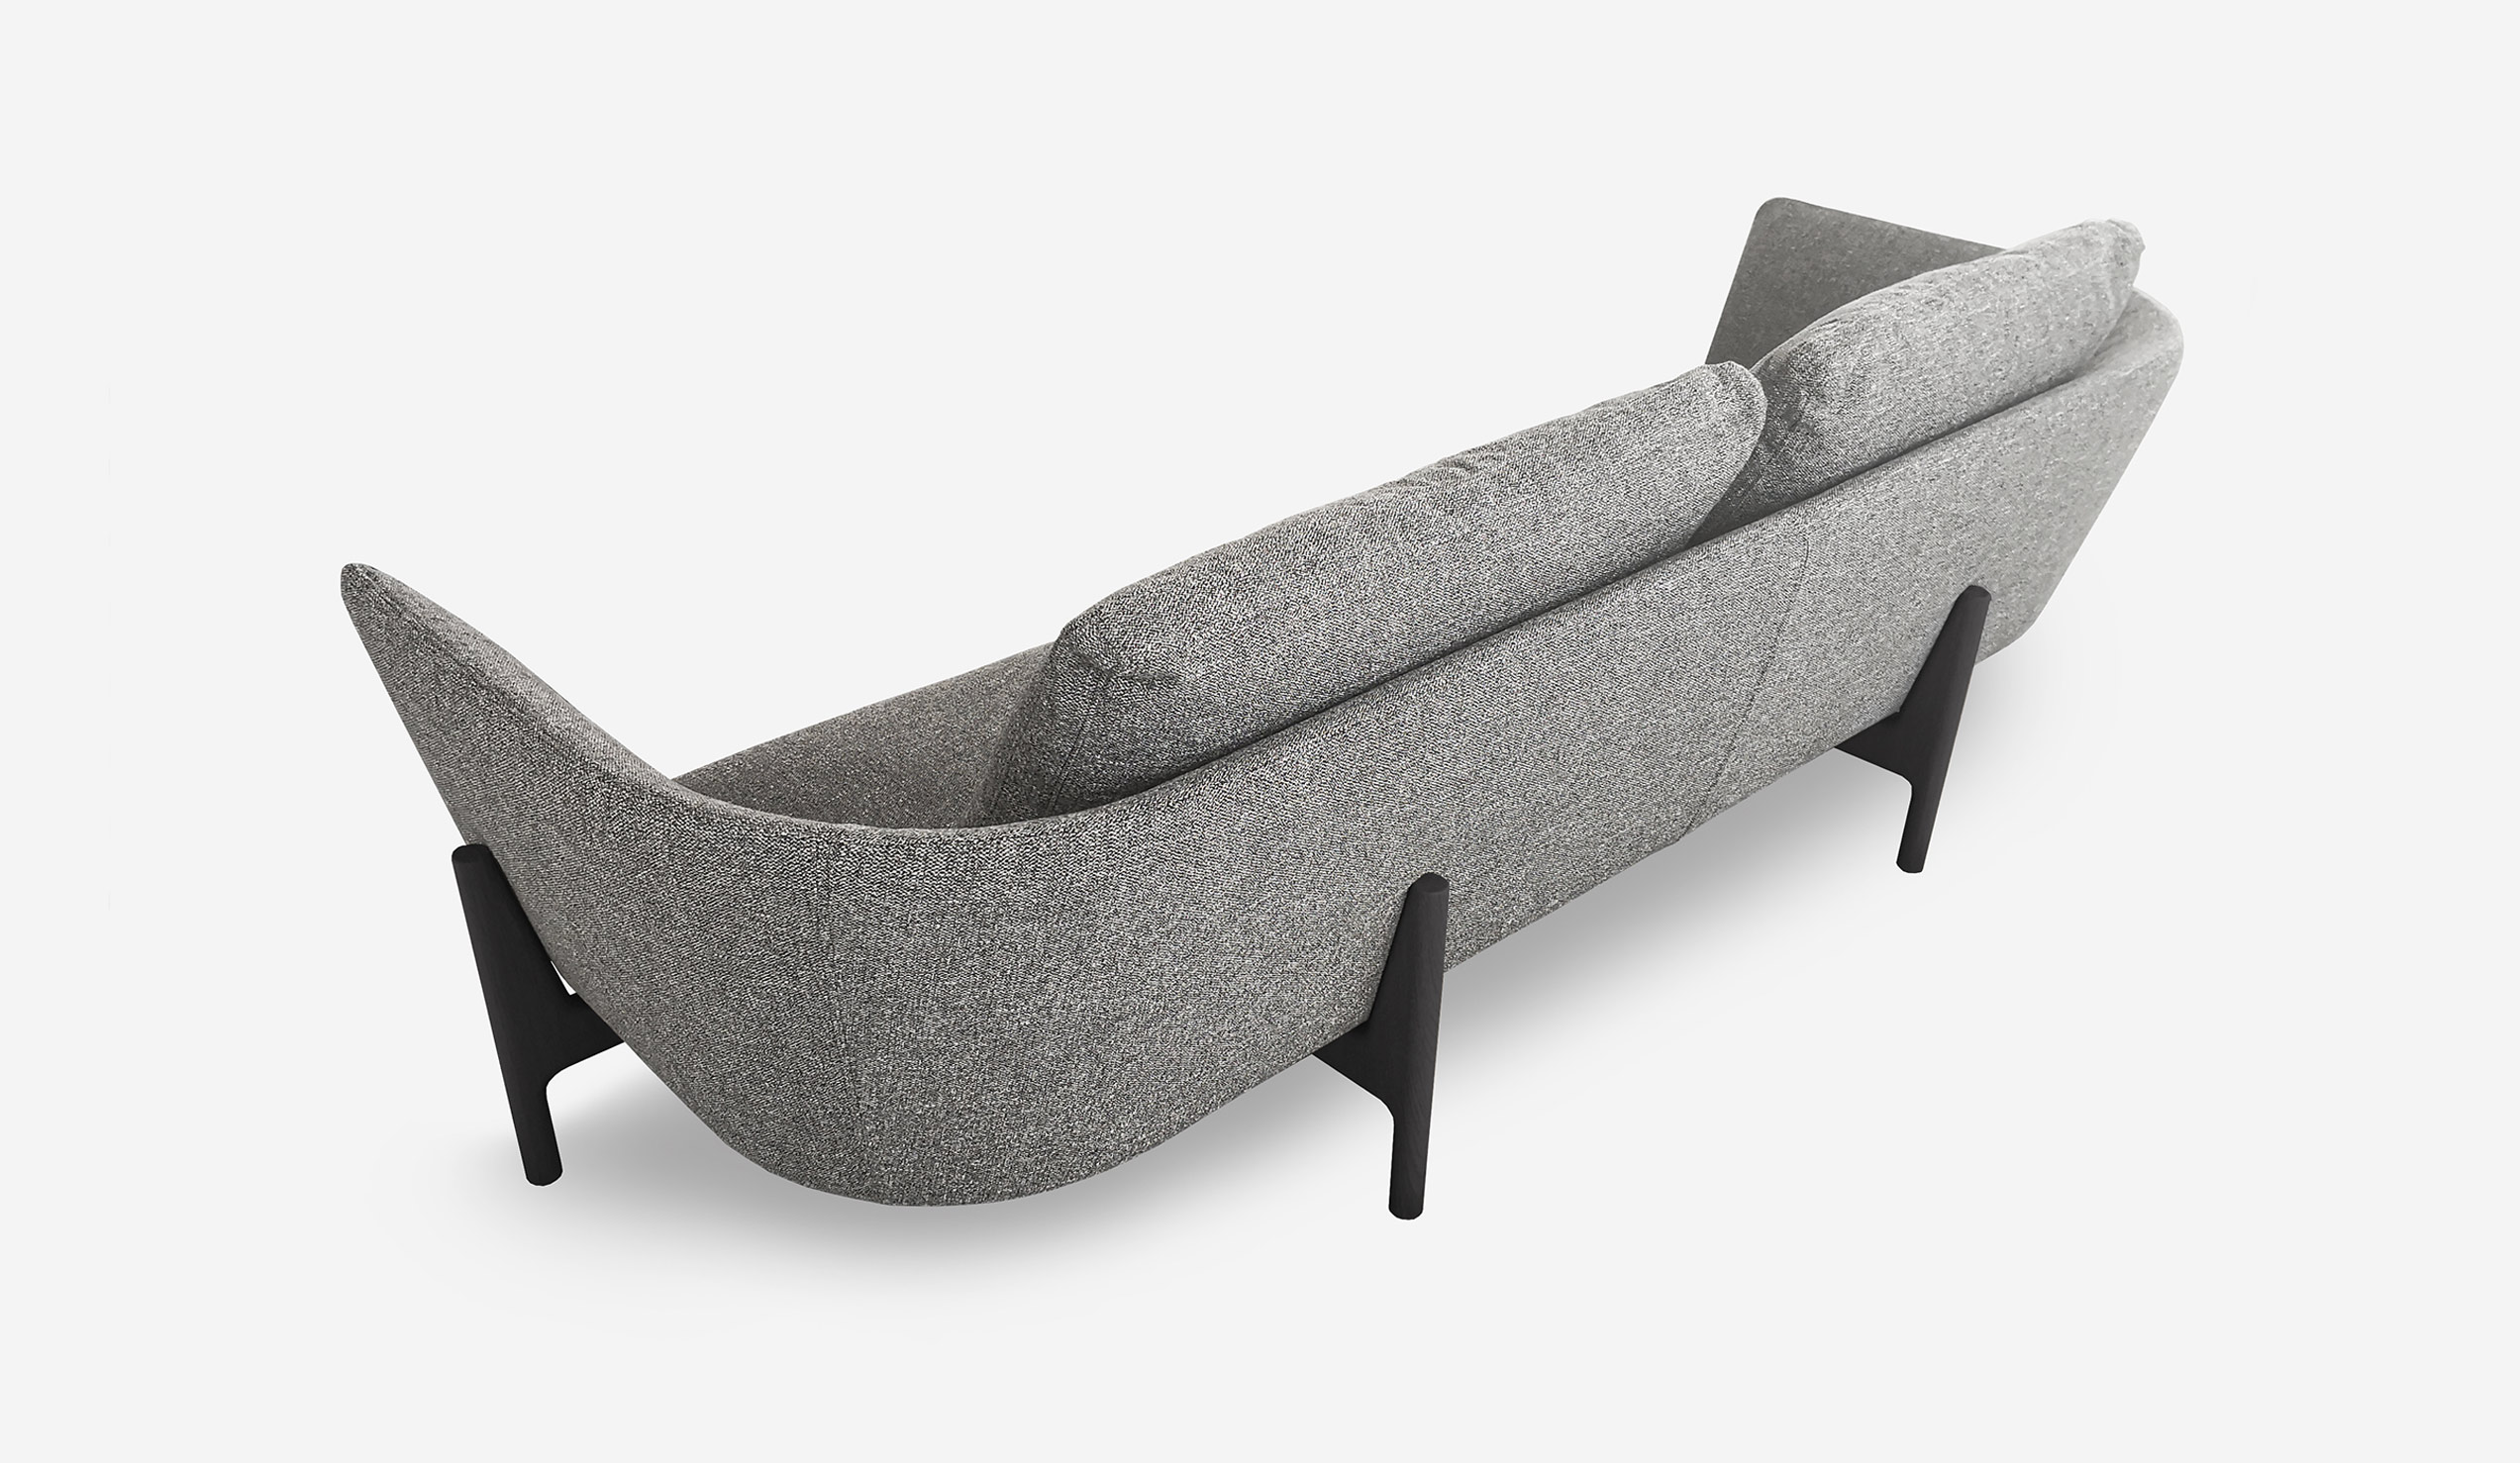 ICFF 2019 Bensen's Minimalist Contemporary Furniture Designs - Loft Sofa - icff ICFF 2019: Bensen's Minimalist Contemporary Furniture Designs ICFF 2019 Bensens Minimalist Contemporary Furniture Designs Loft Sofa